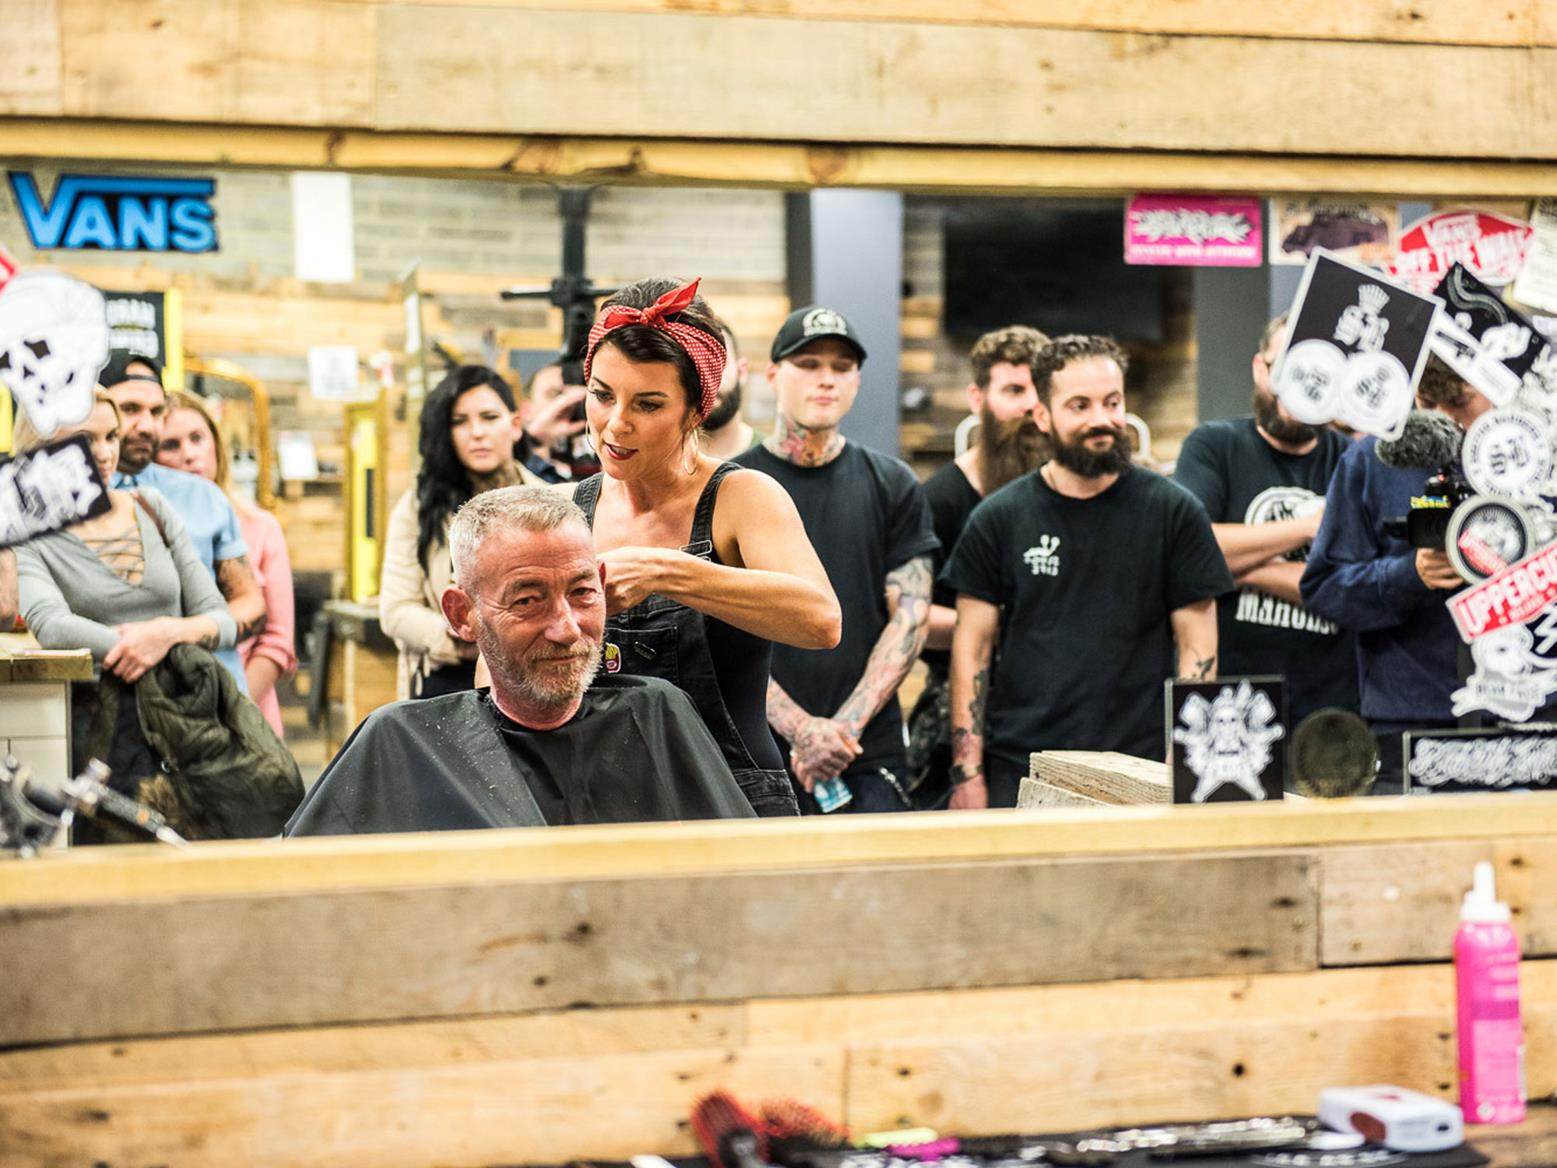 BarbersRide kicks off in Liverpool on August 10